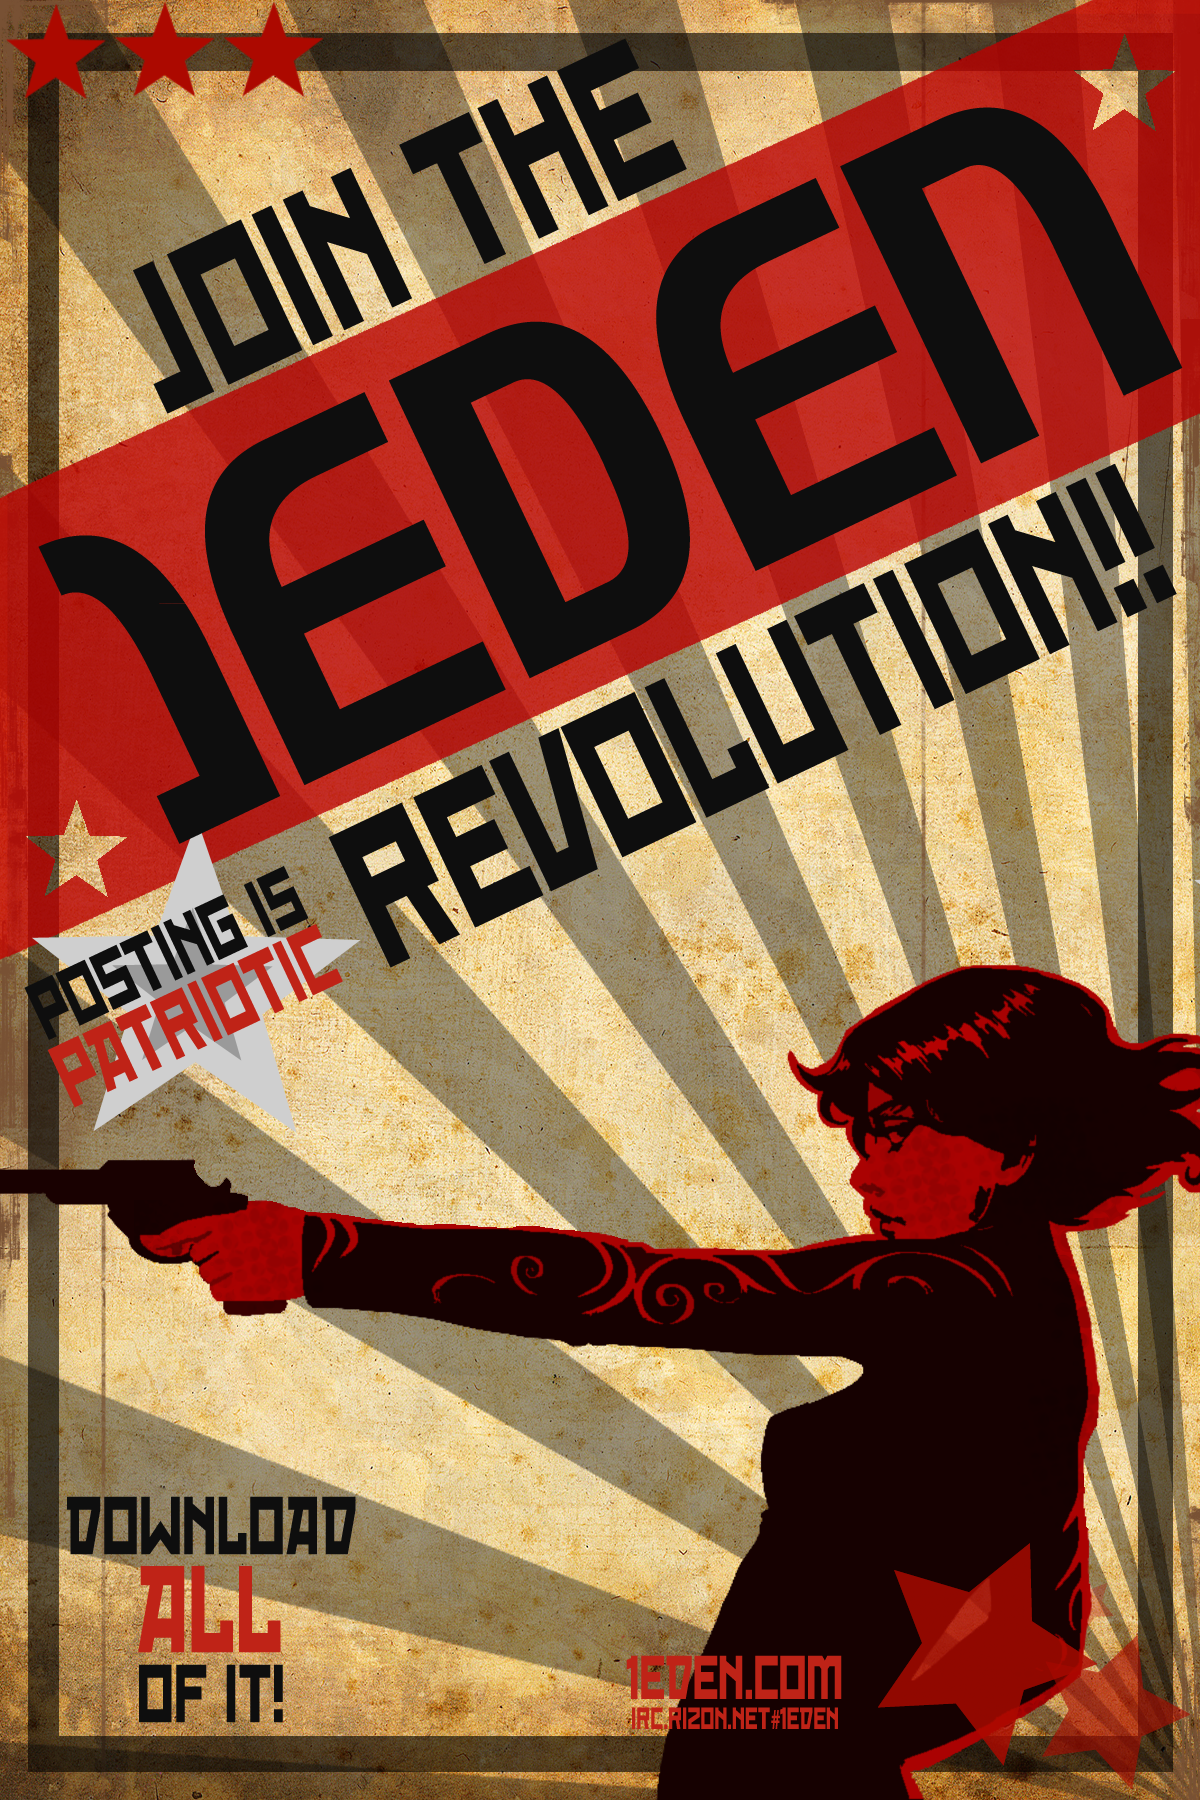 1eden Com Propaganda Poster 1 By Hollybubblecakes On